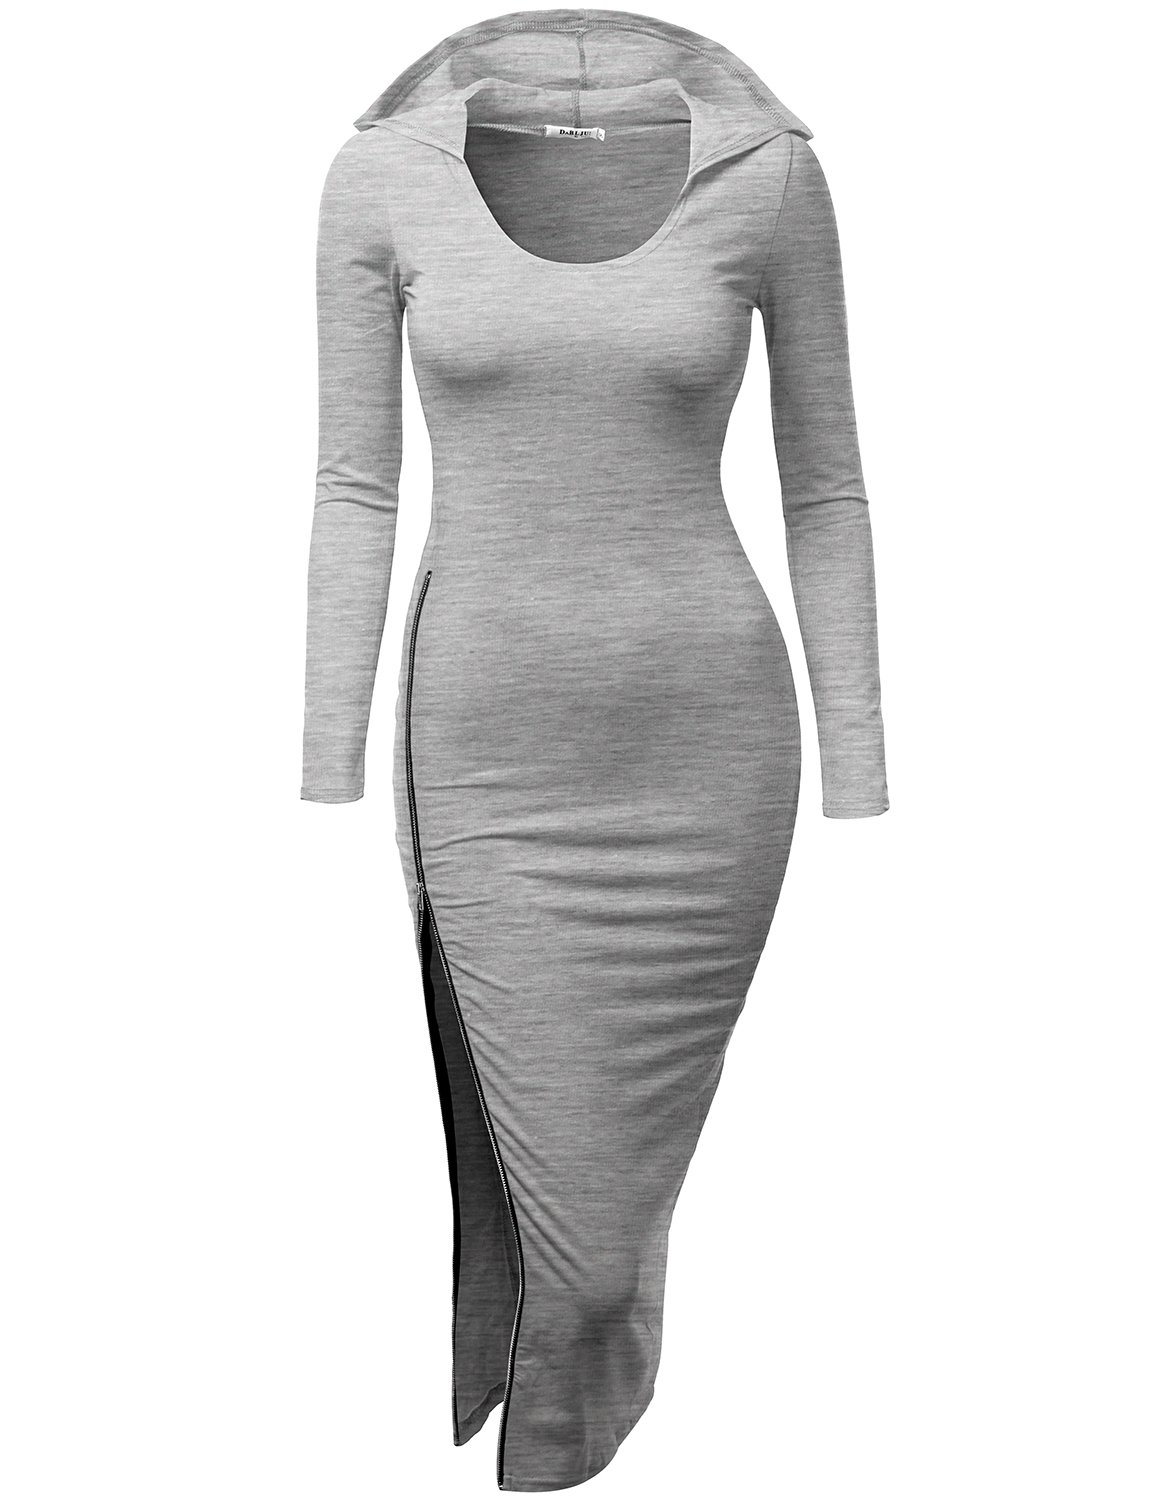 Doublju Fitted Dress With Sexy Side Zipper Point For Women With Plus Size GRAY MEDIUM